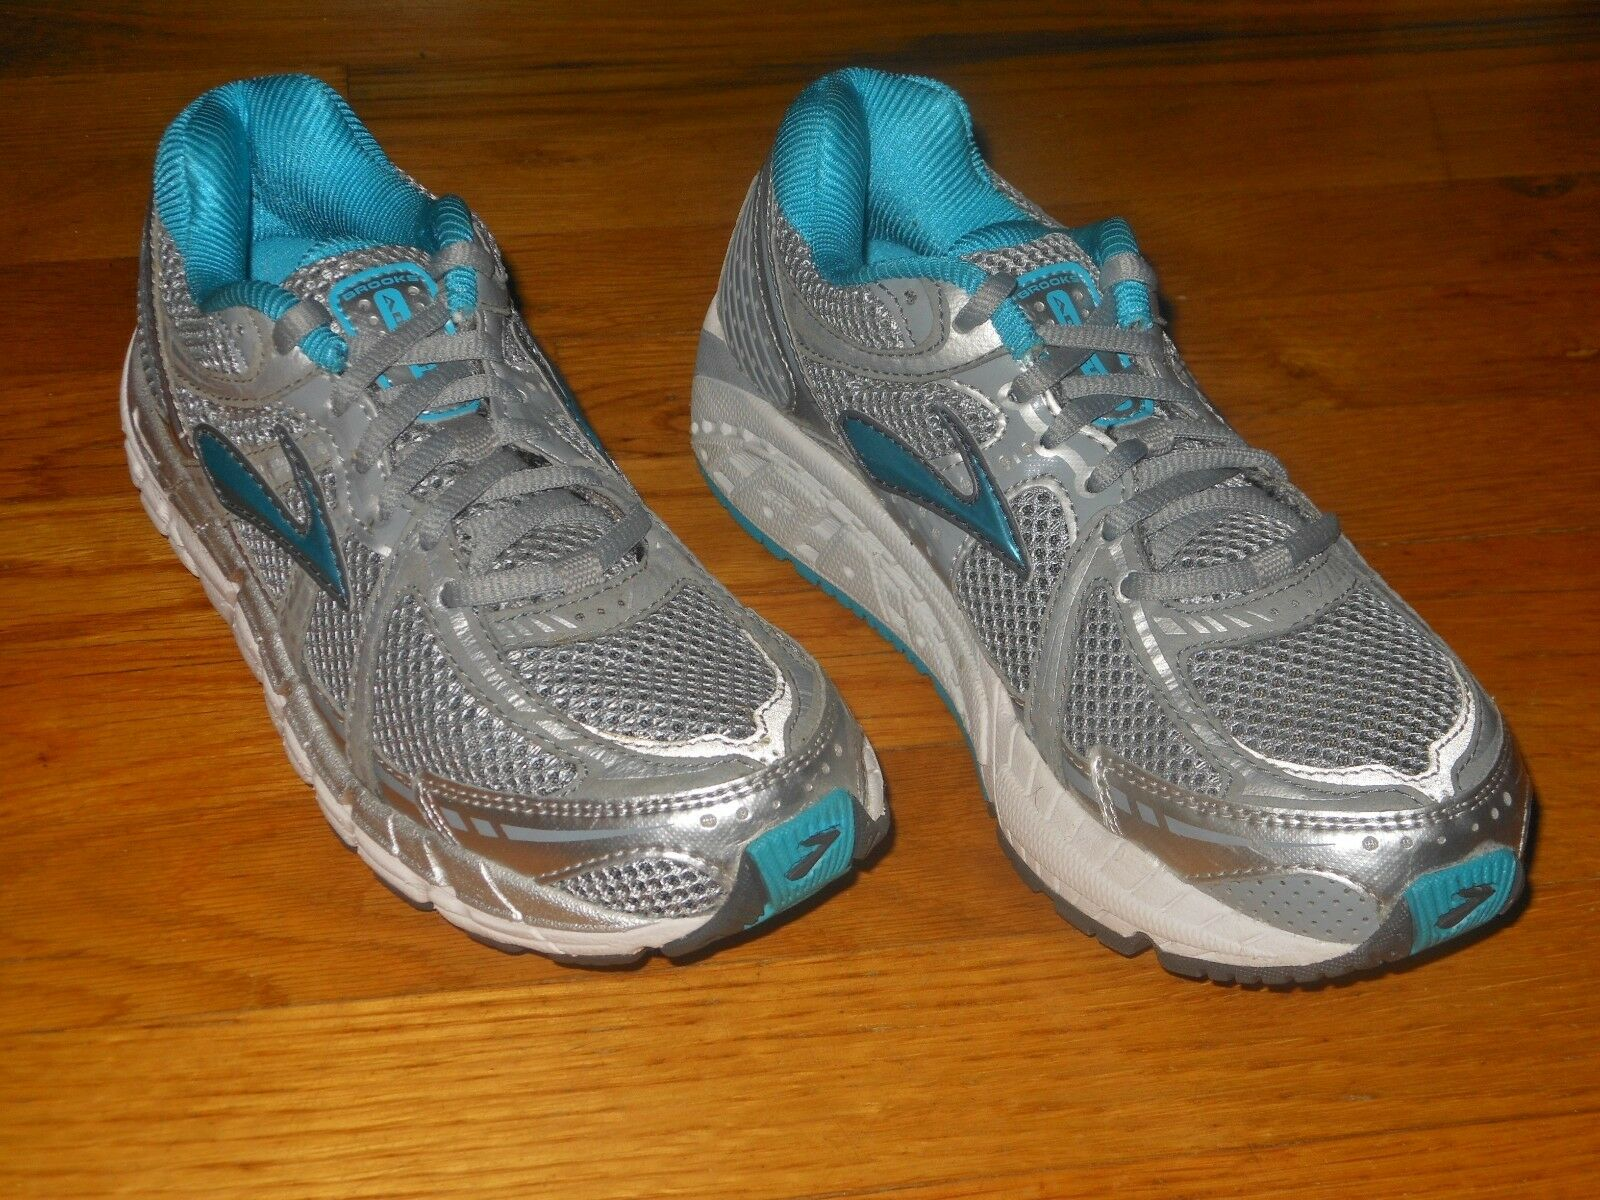 Brooks Addiction 11 women's running shoes - Sz 7 AA - Excellent cond